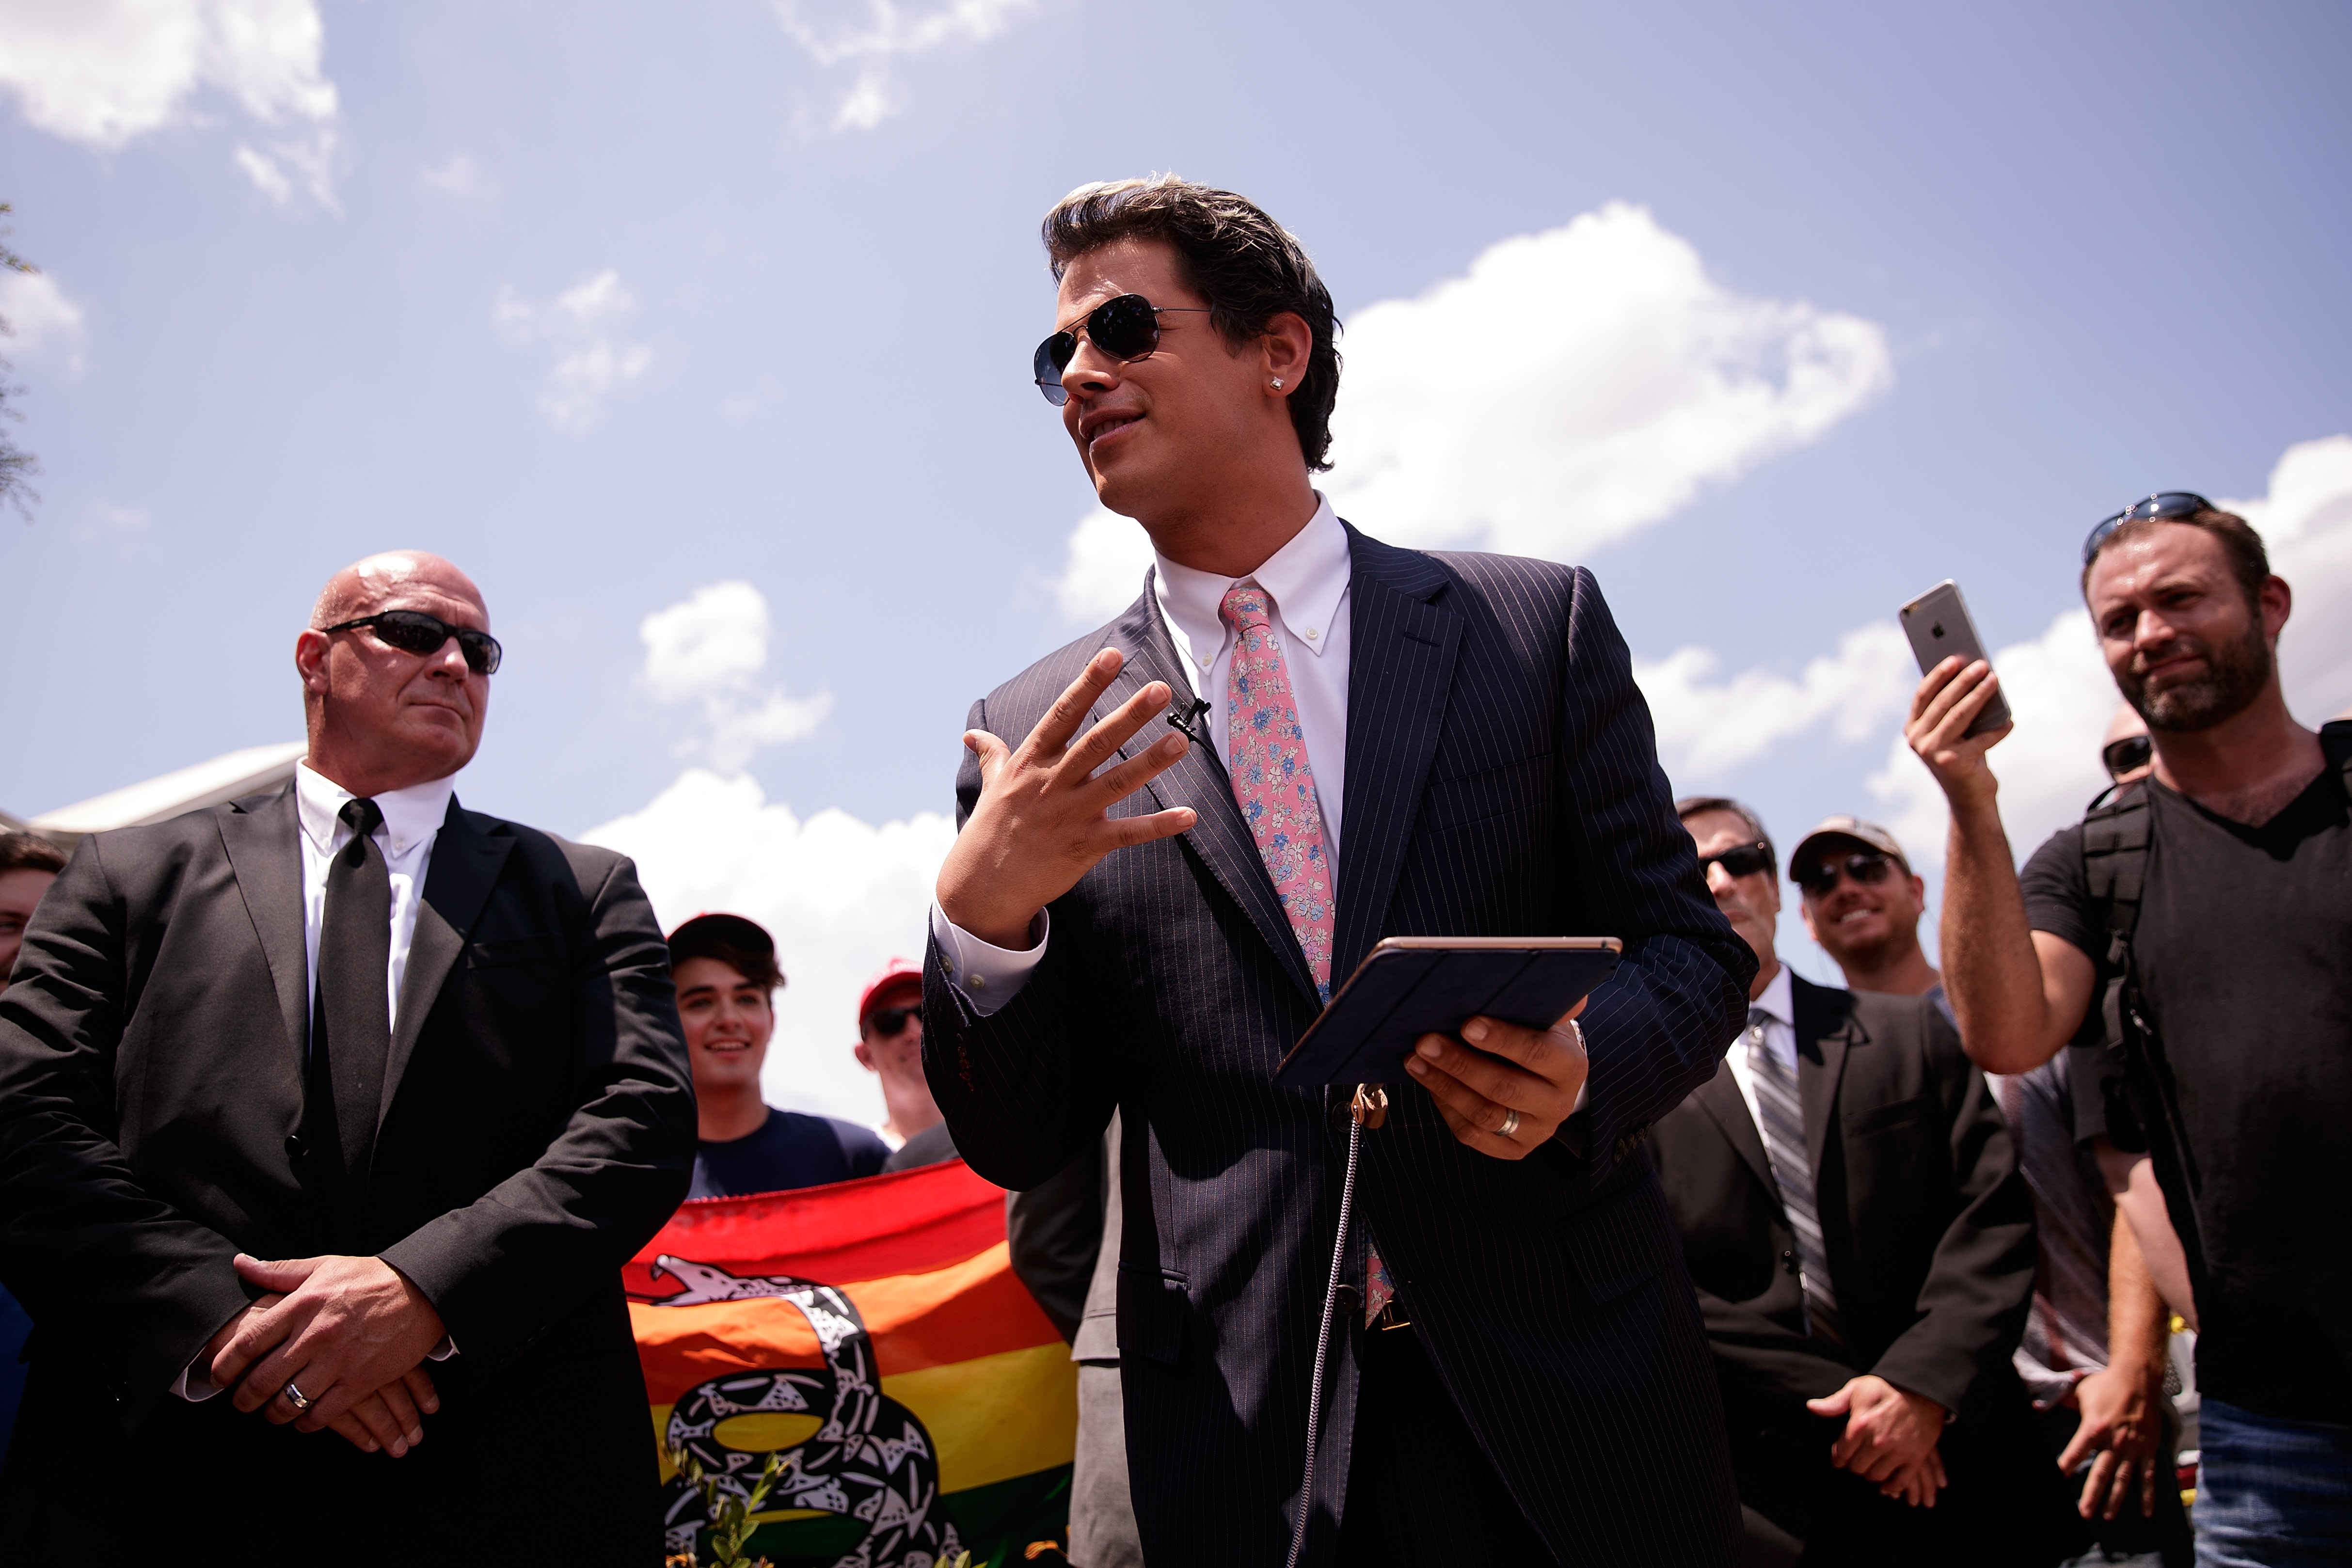 So Milo Yiannopoulos defends ****s and Man-Boy love